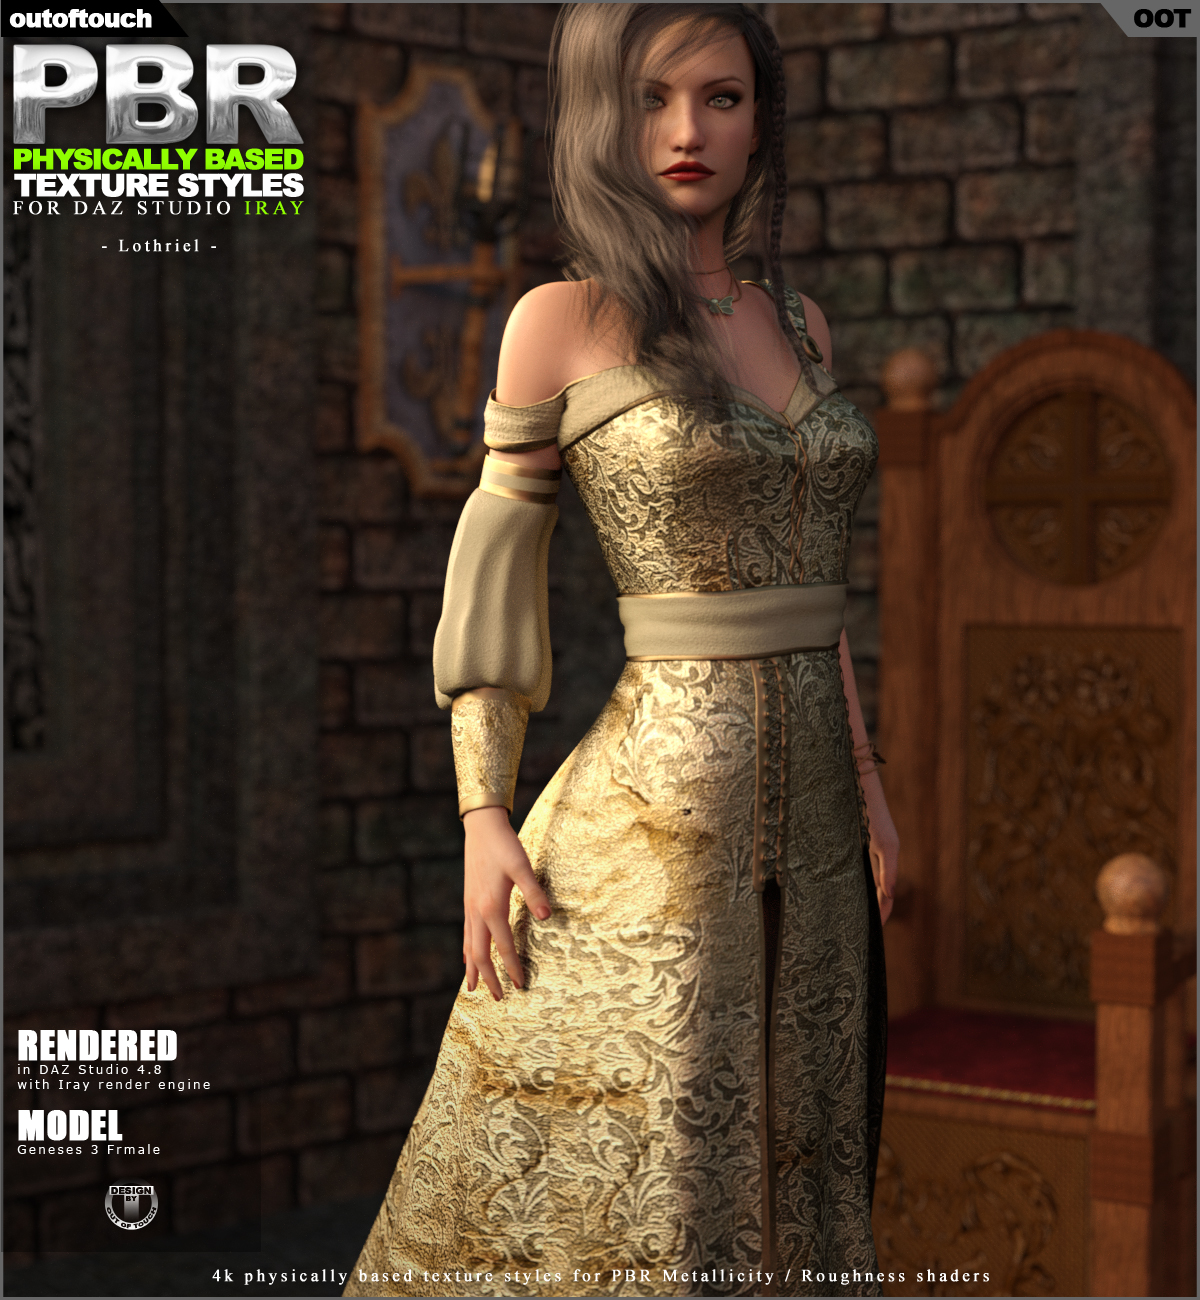 OOT PBR Texture Styles for Lothriel